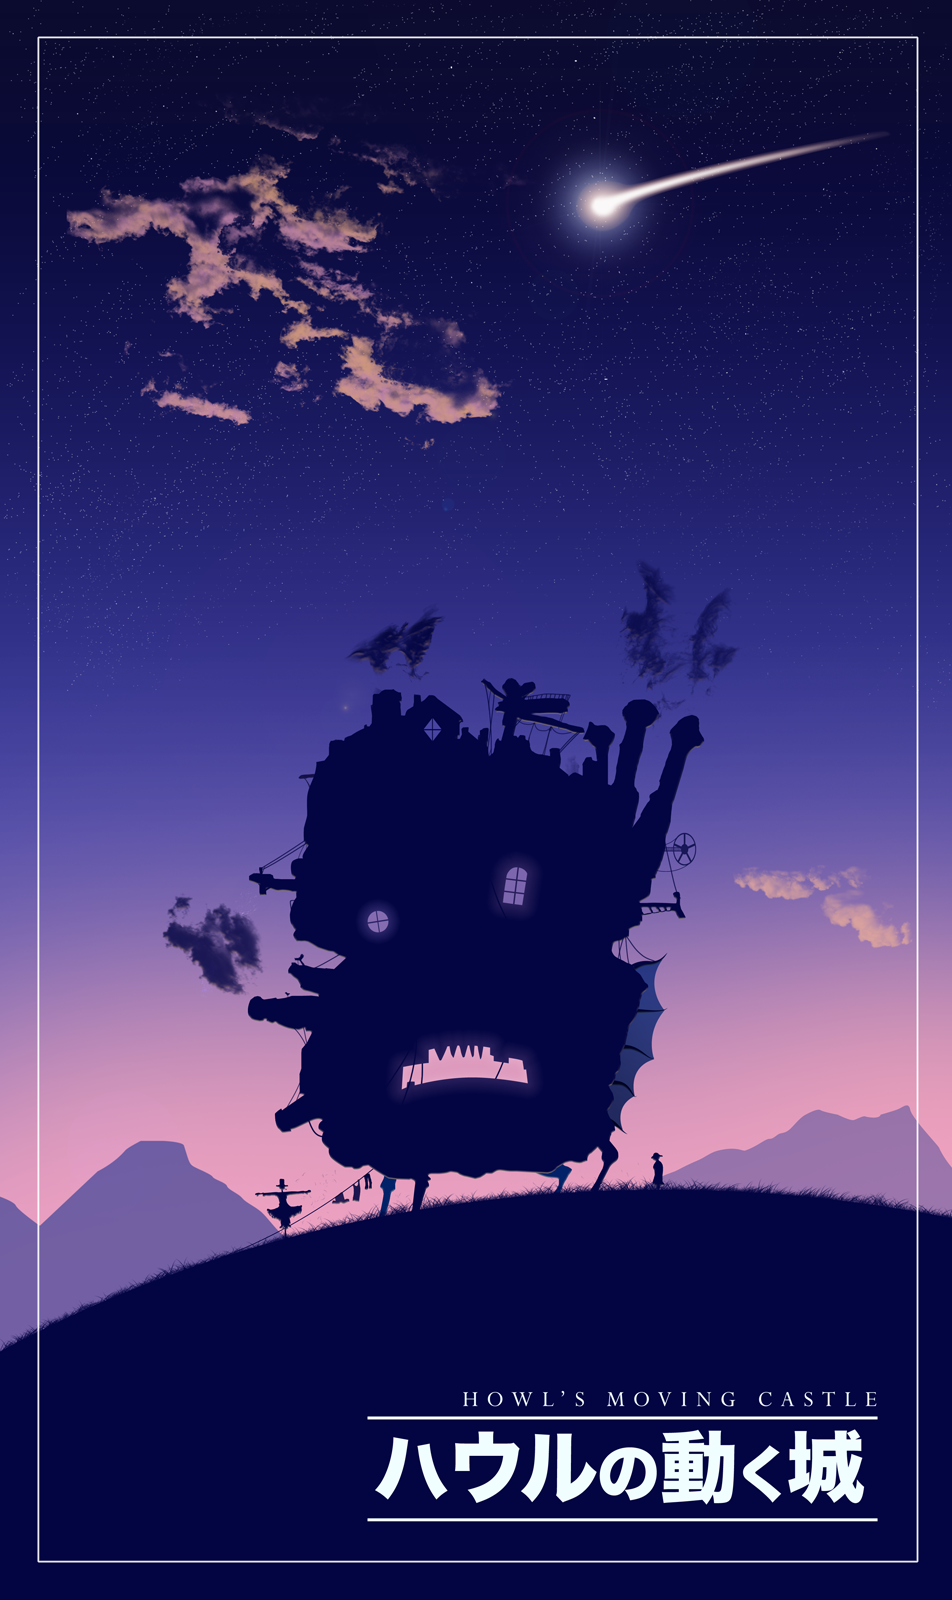 Howl's Moving Castle Poster | ANIMATION MOVIE POSTERS | Pinterest ...